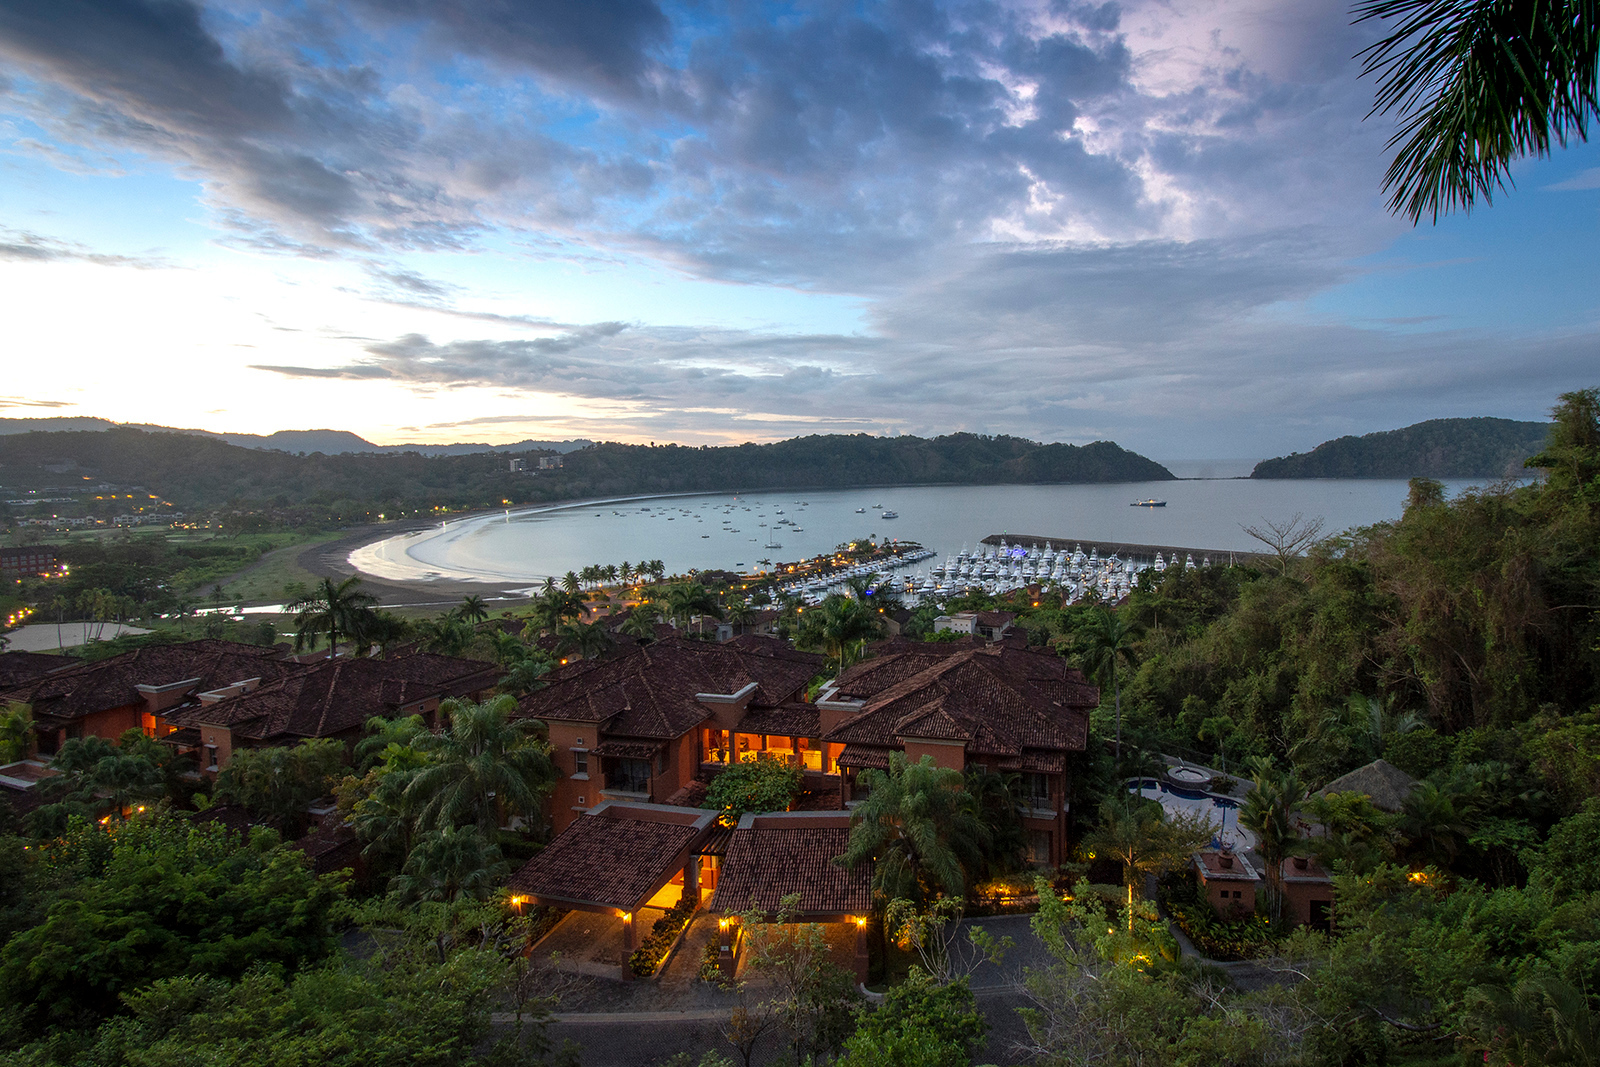 The view from one of the condos overlooking Los Sueños Resort and Marina.